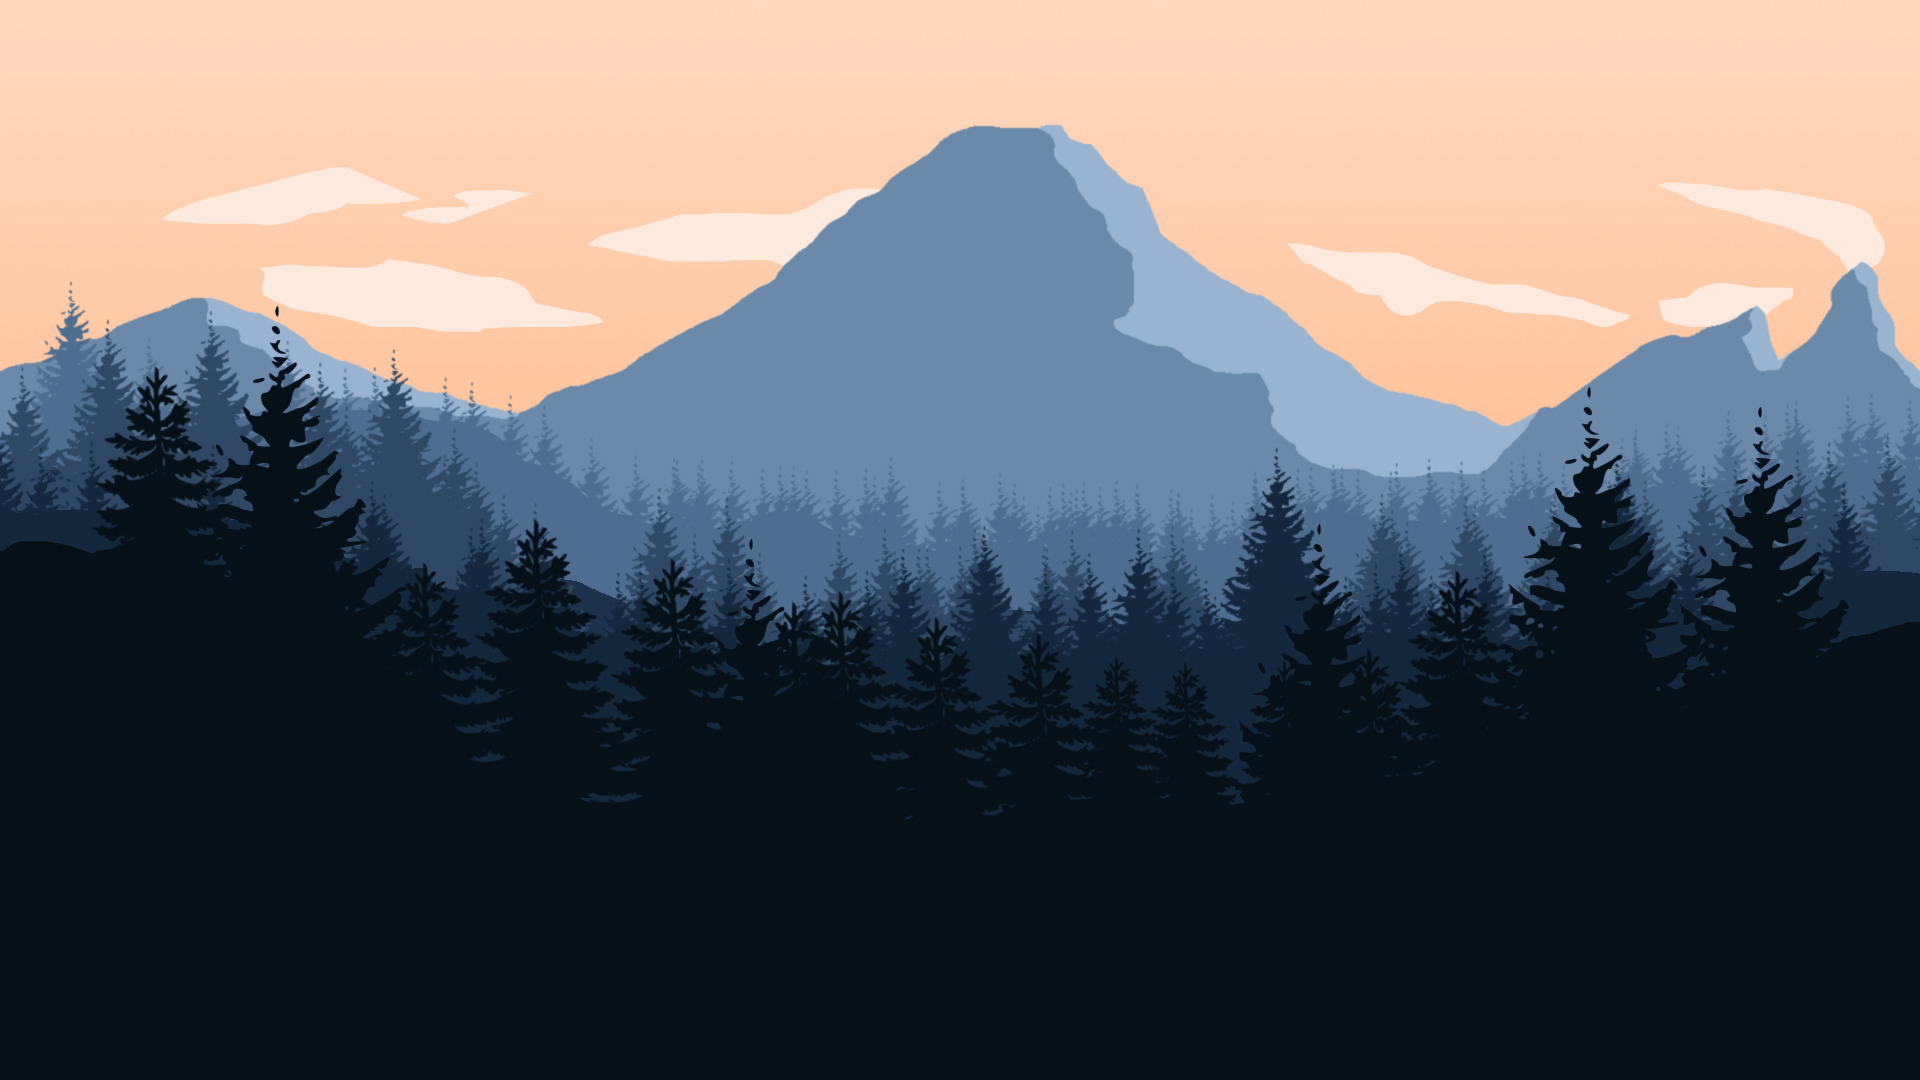 Gravity Falls Wallpaper Hd Android Firewatch Mountains Forest Sky Landscape Artwork